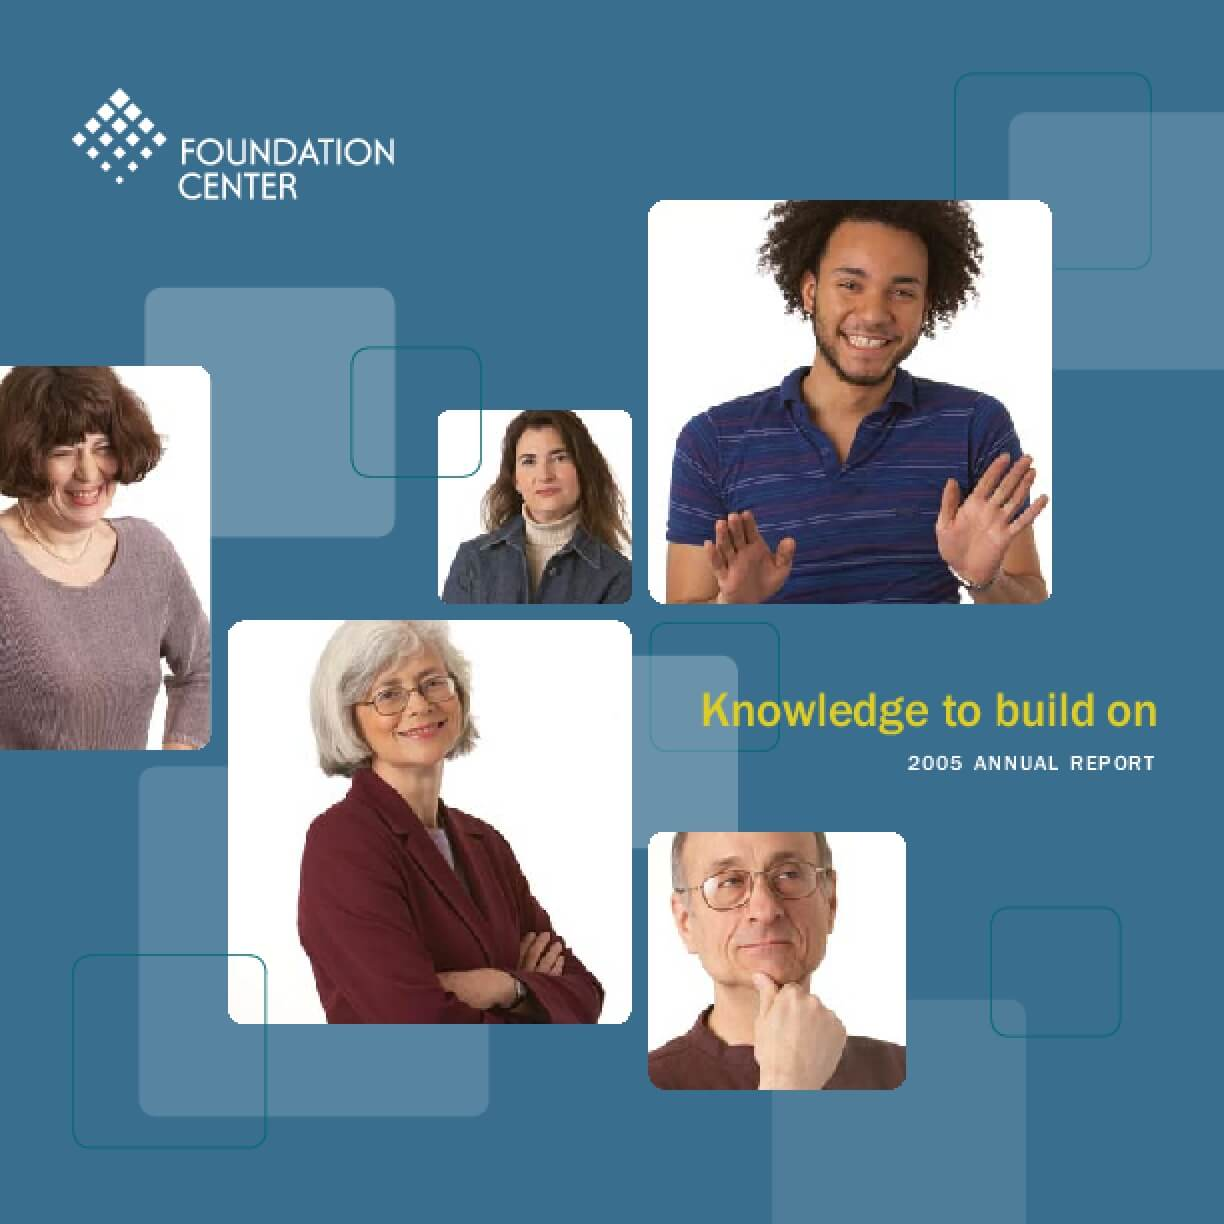 The Foundation Center 2005 Annual Report